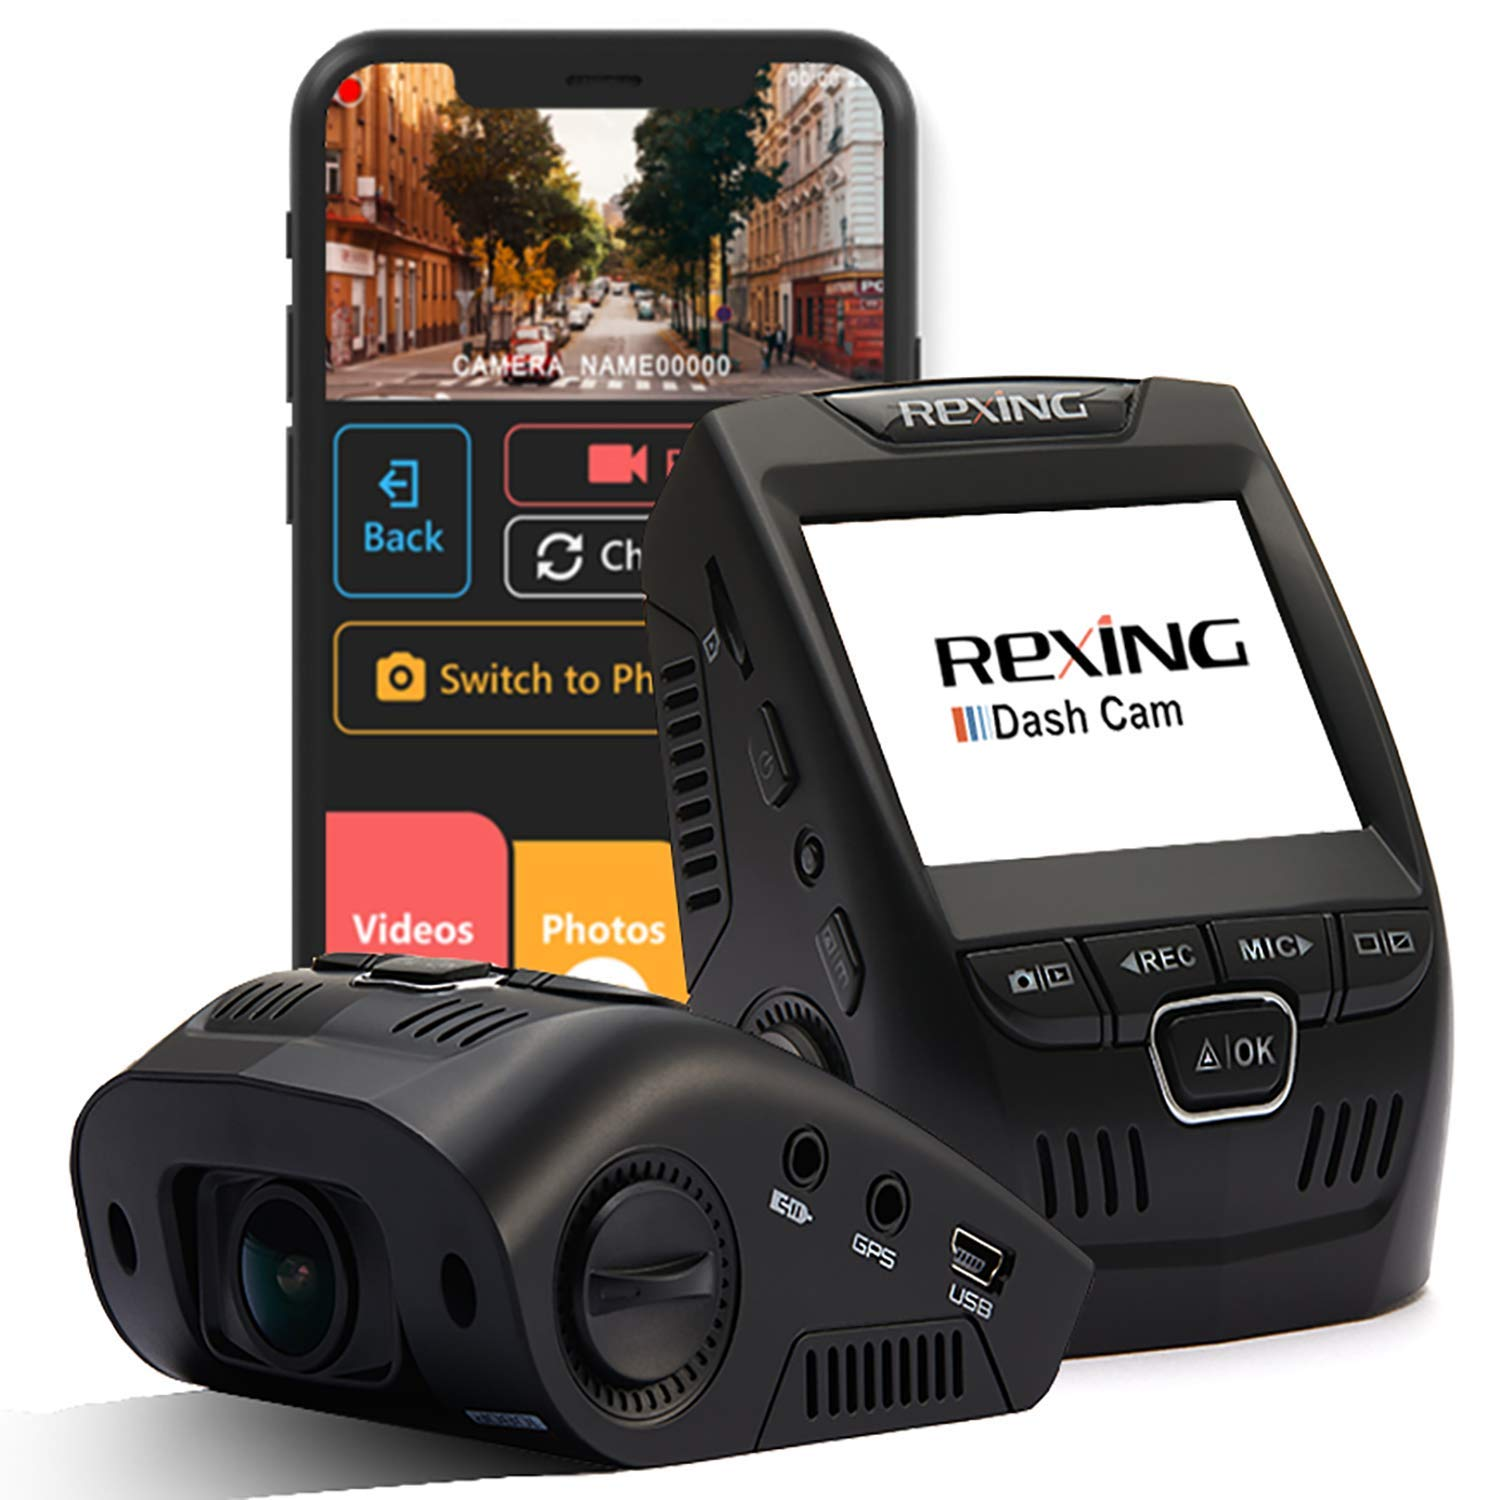 Rexing V1 Wi-Fi Car Dash Cam 2.4'' LCD FHD 1080p 170° Wide Angle Dashboard Camera Recorder with G-Sensor, WDR, Loop Recording, Supercapacitor, Mobile App by REXING